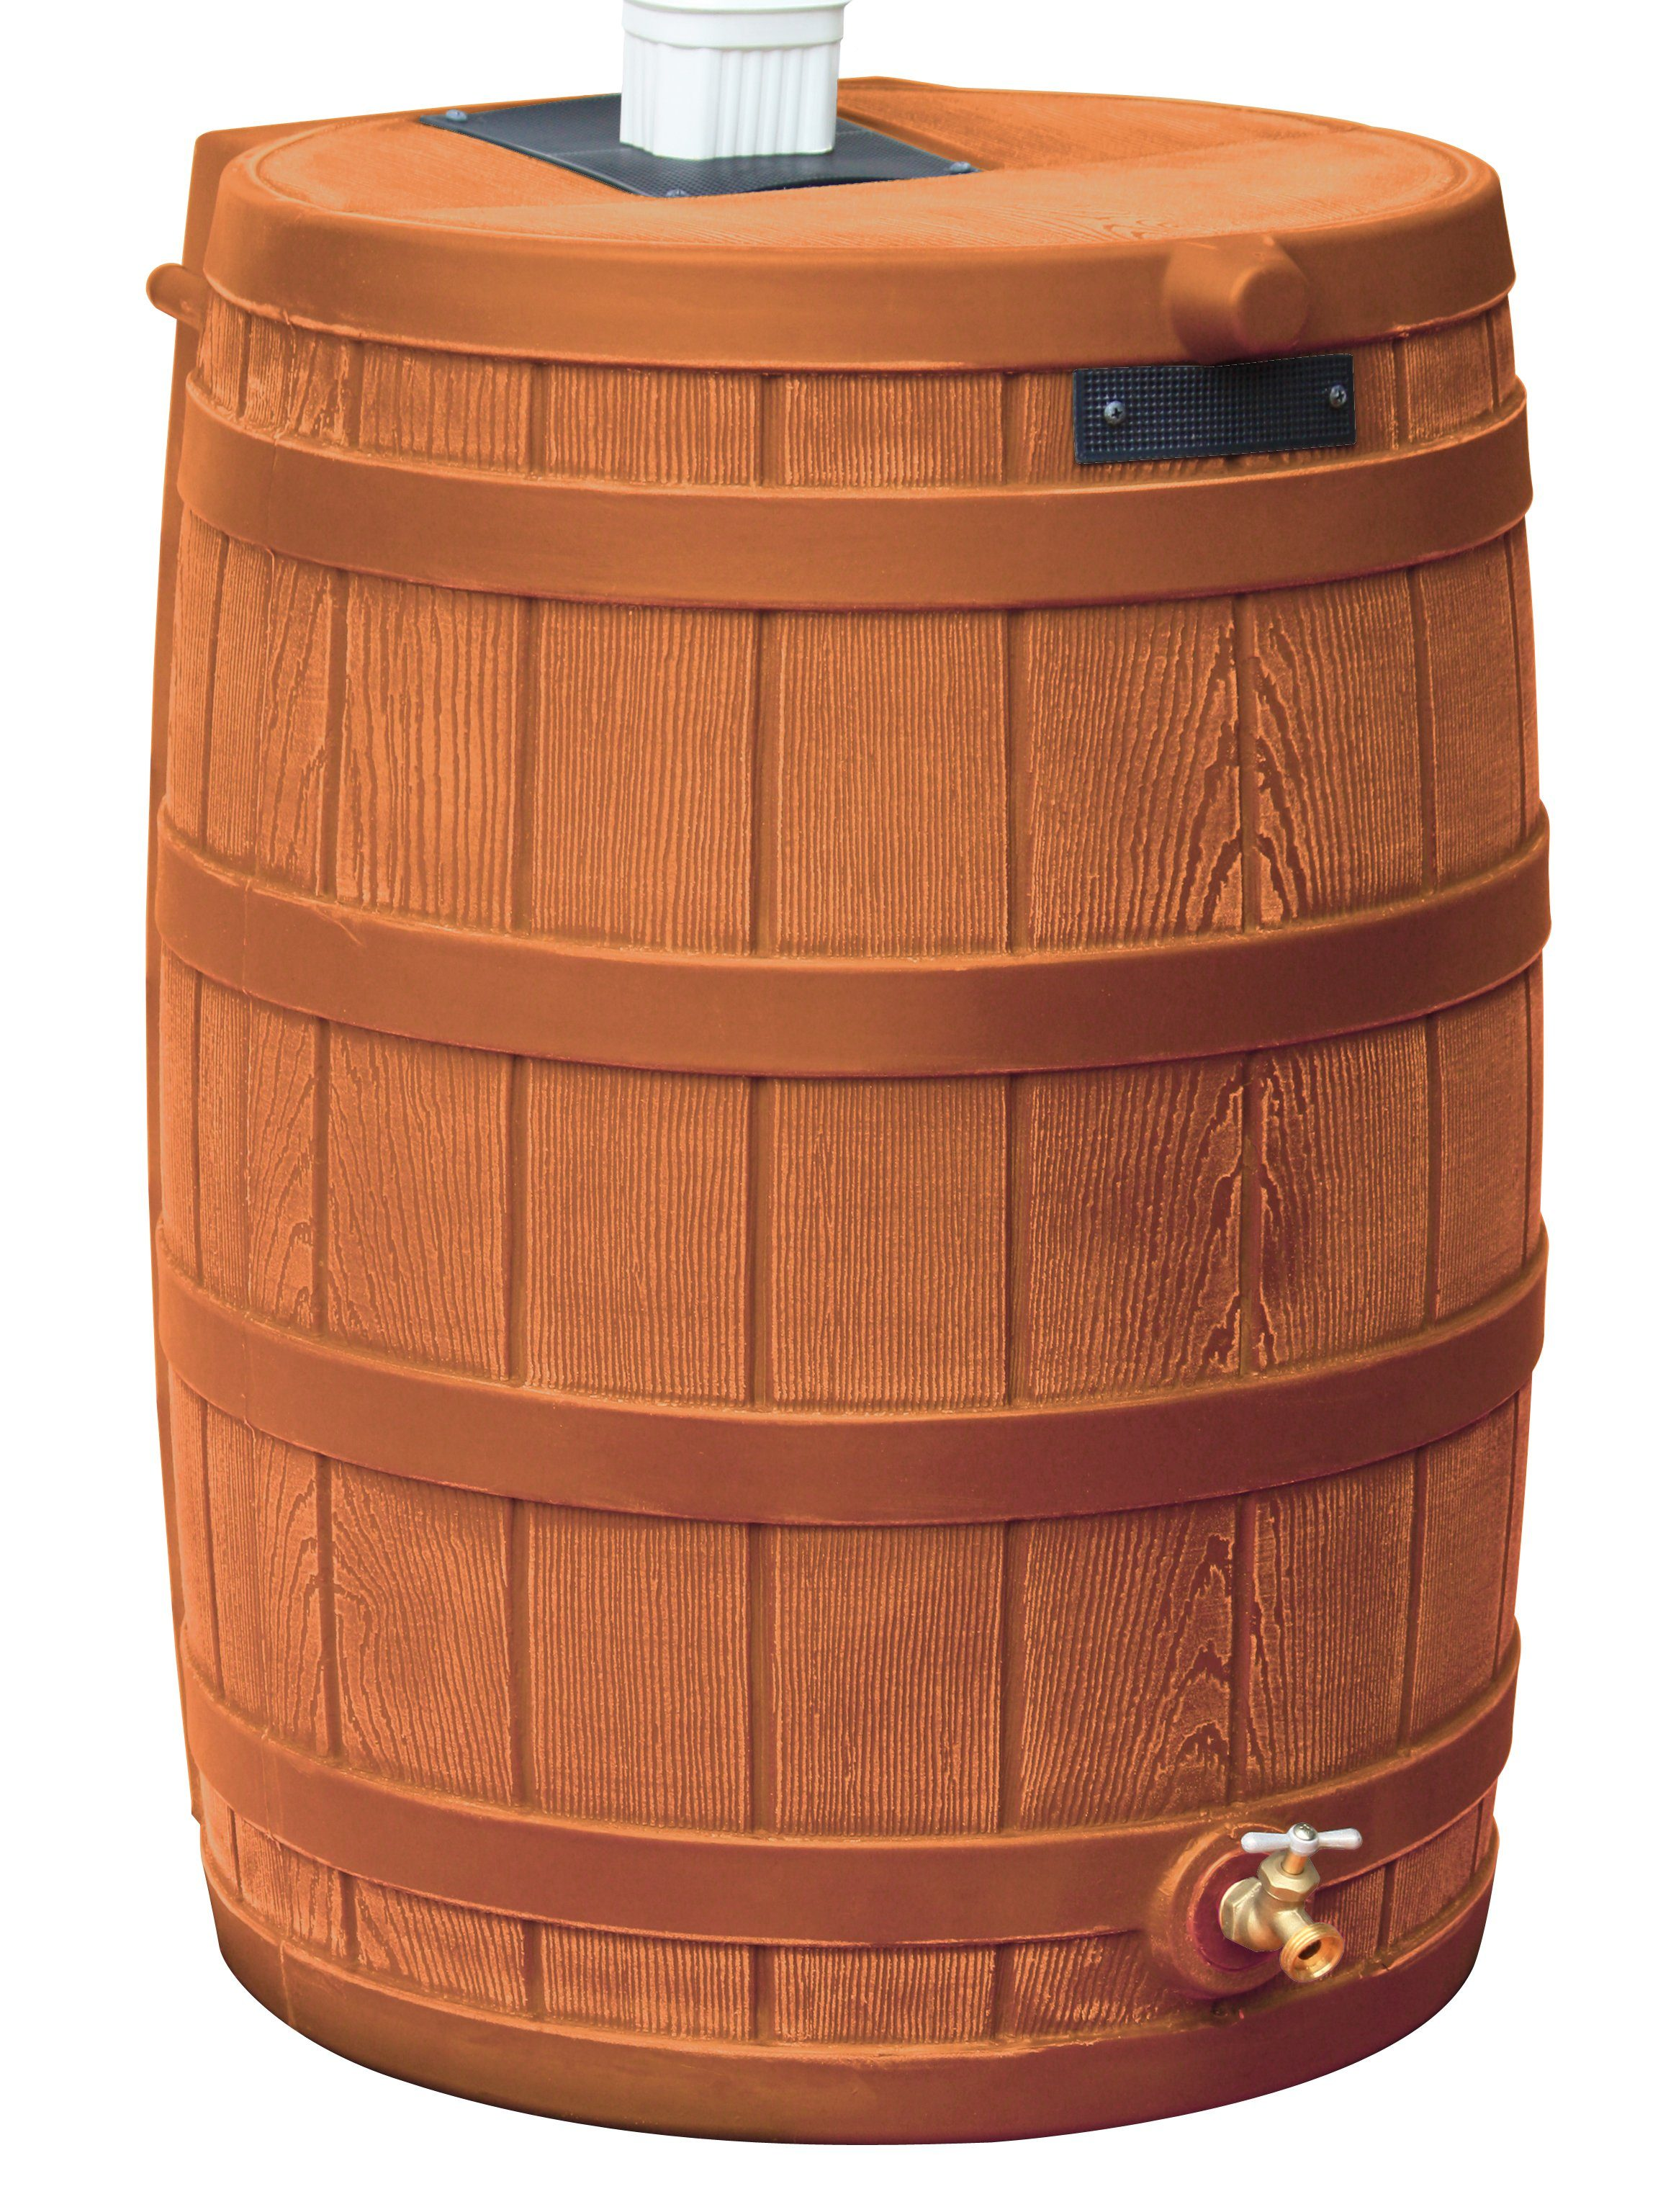 Rain Barrels - Good Ideas | Rain Wizard Diverter Kit